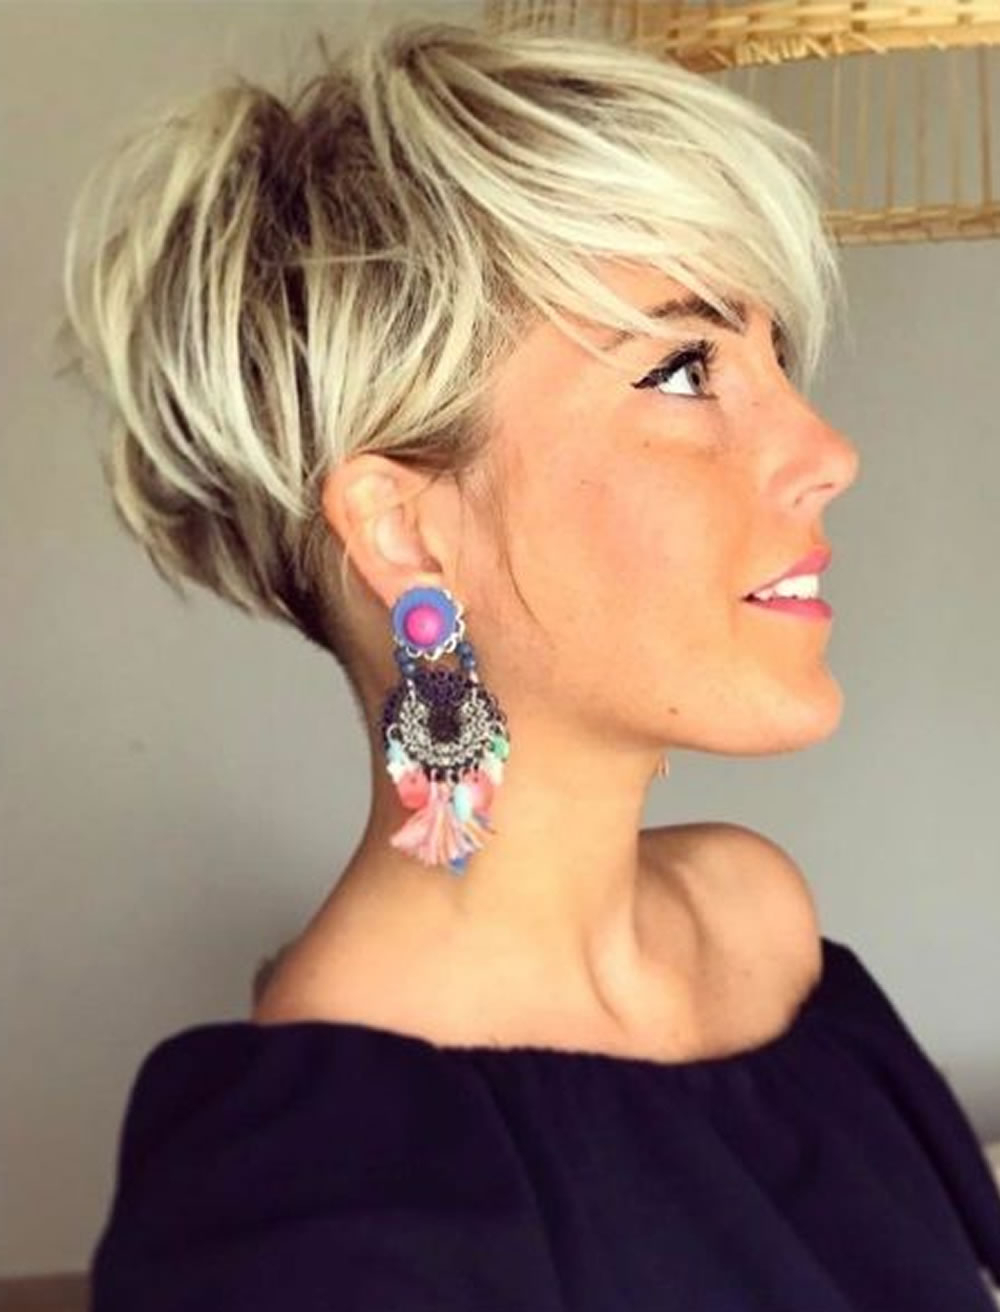 30 Best Asymmetric Short Haircuts For Women Of All Time – Hairstyles With Asymmetric Short Haircuts (View 2 of 25)